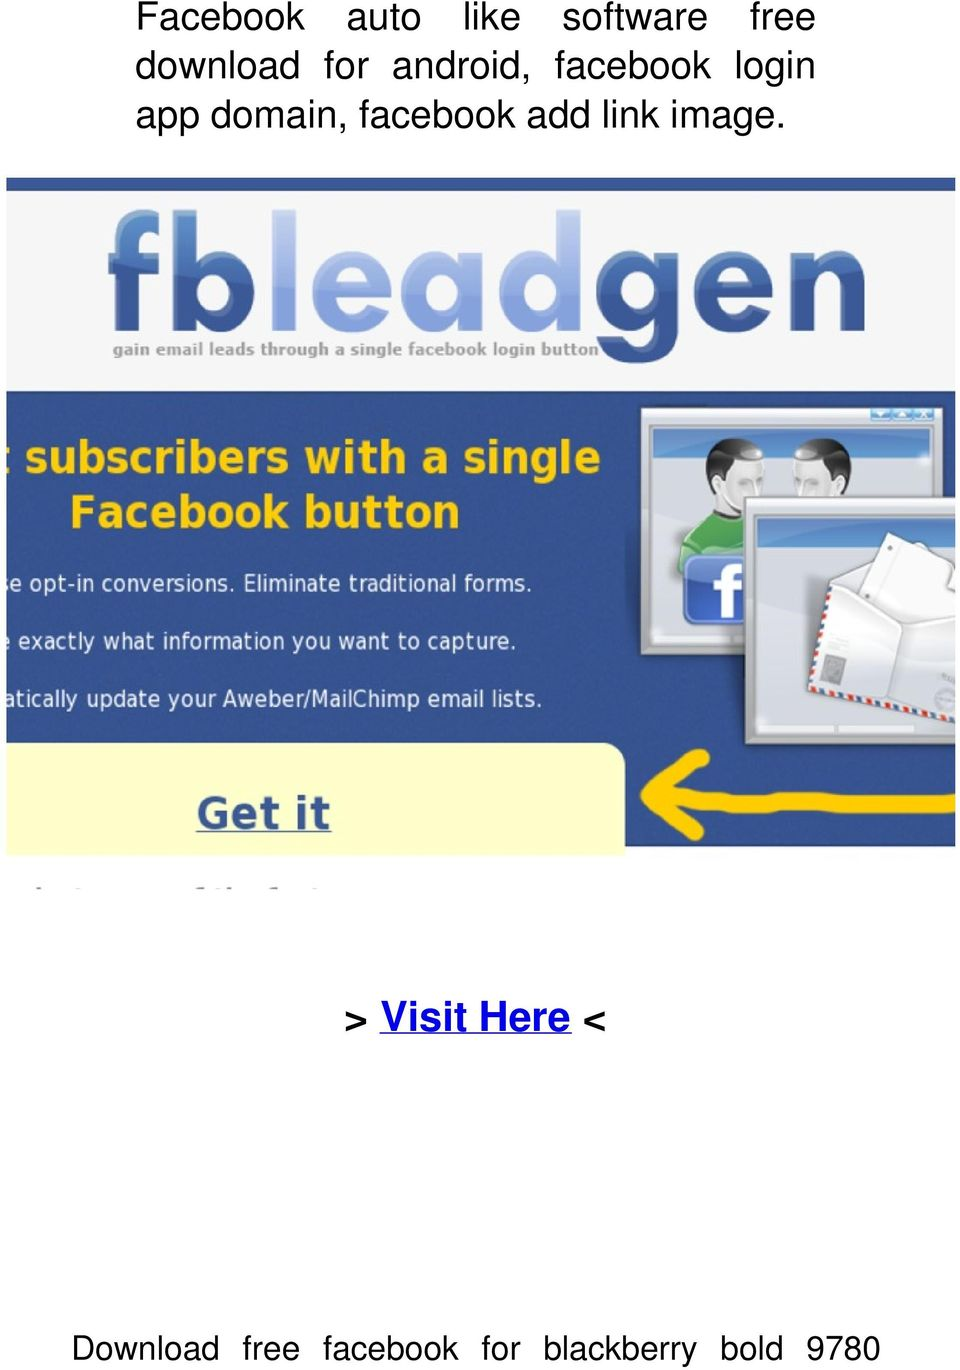 Facebook auto like software free download for android